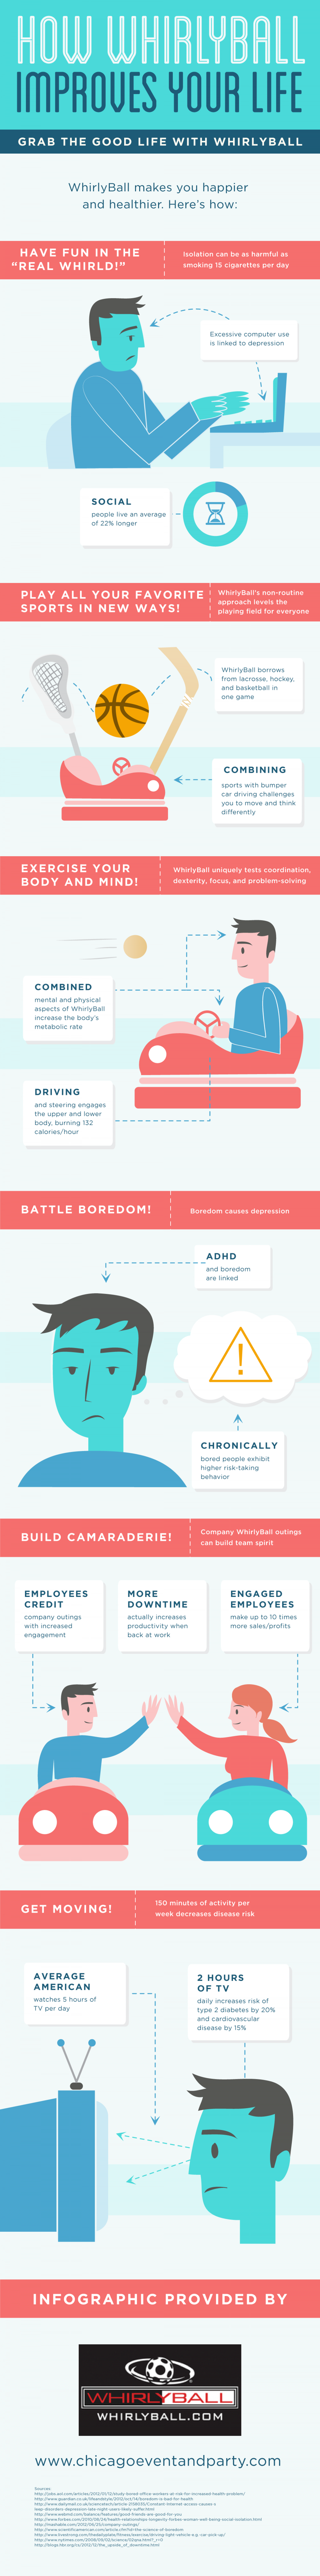 How WhirlyBall Improves Your Life Infographic